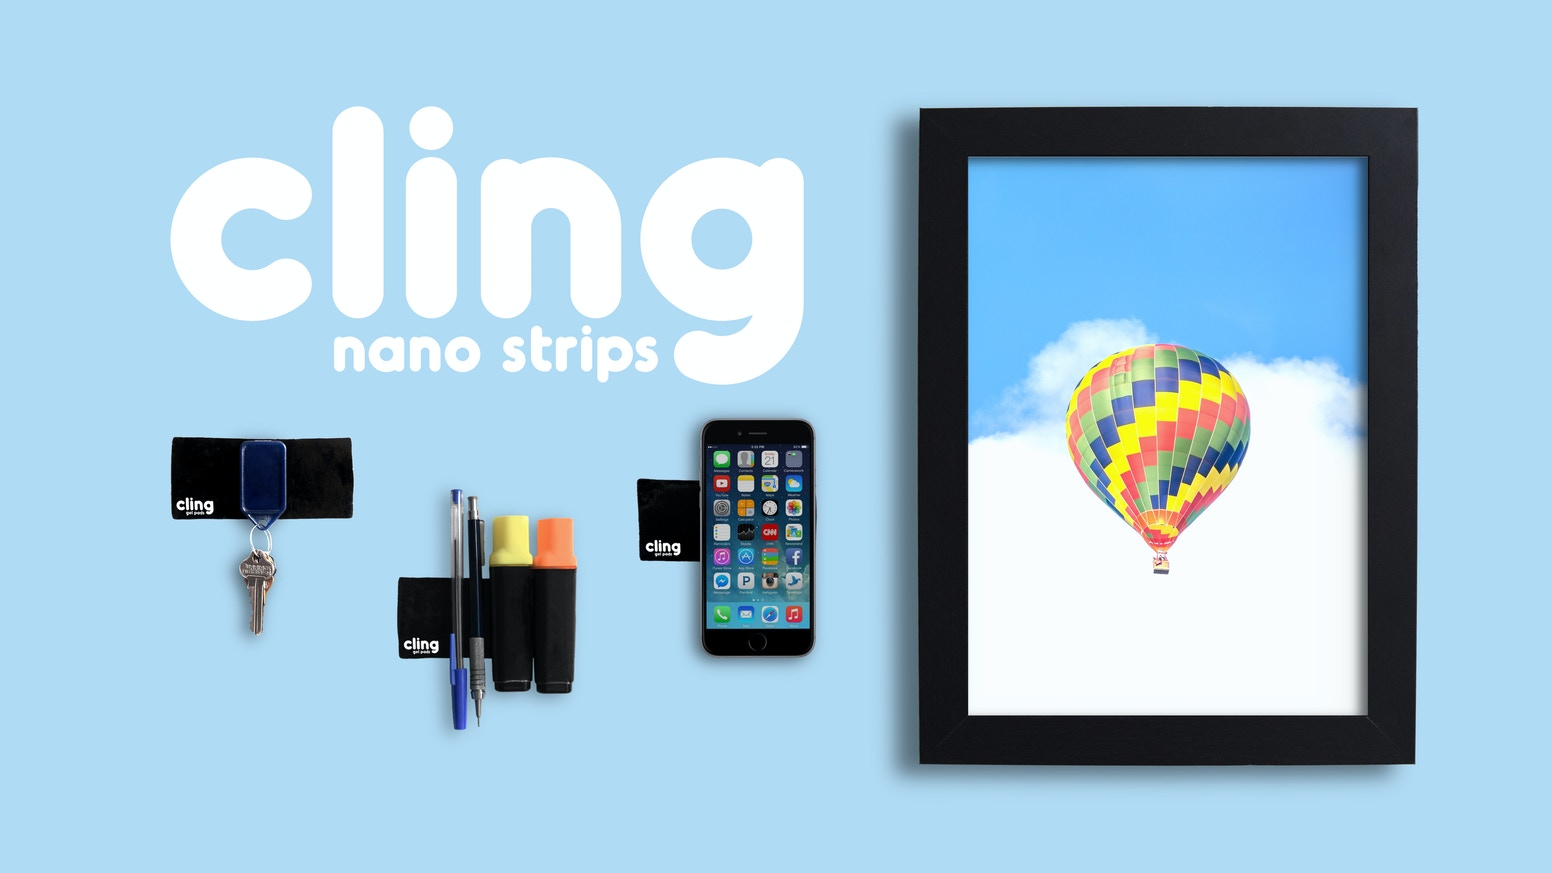 Cling nanoSTRIPS combine our latest developments in Nano Suction Tech and an All New Sizing to secure your Possessions to Almost Anything!